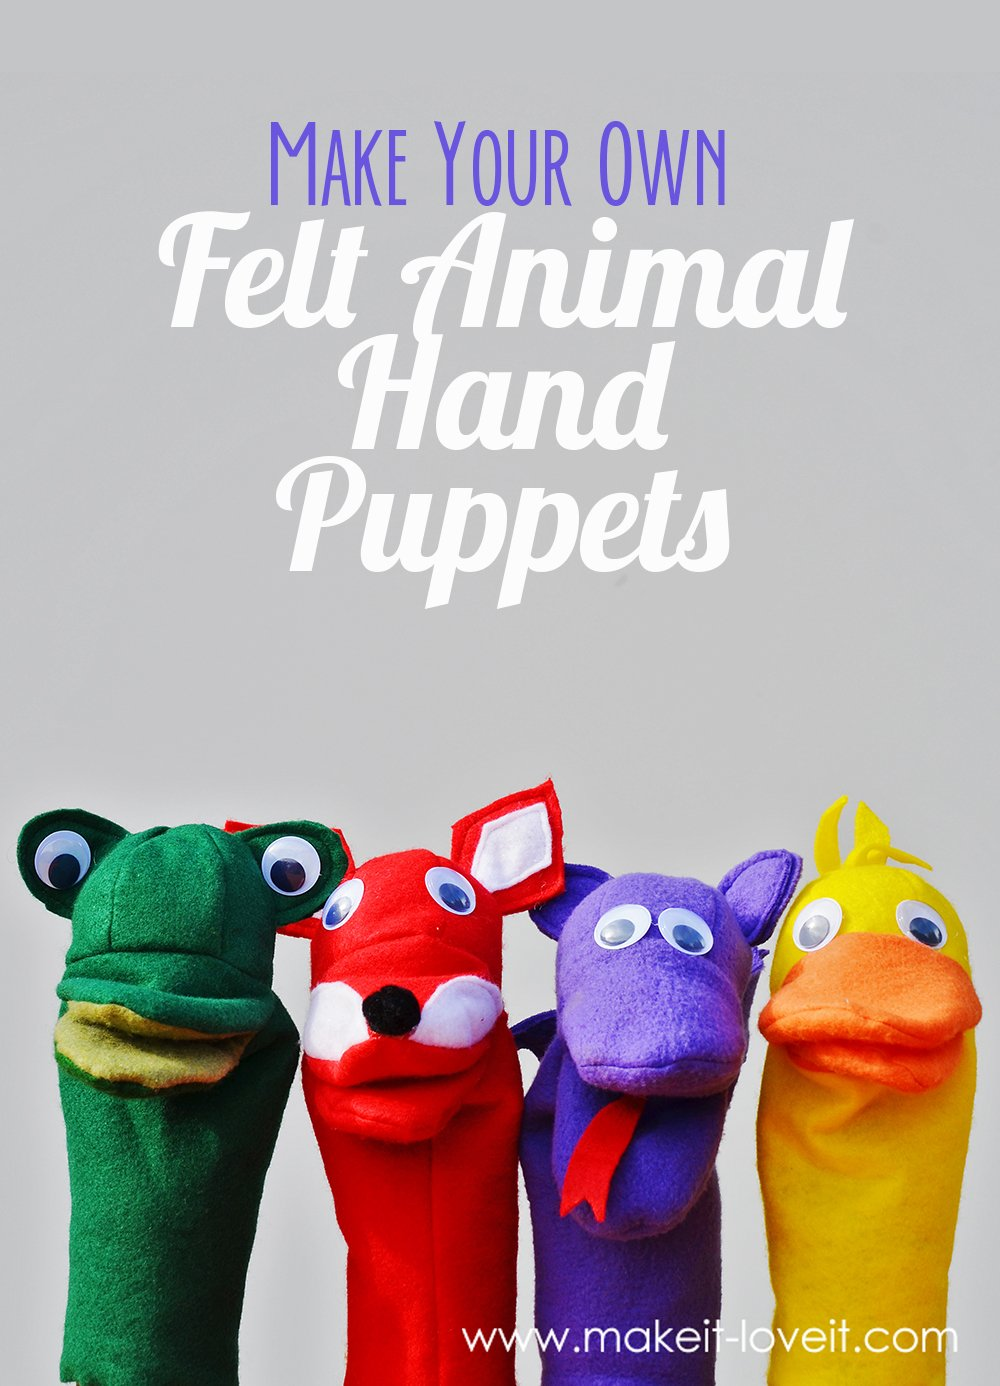 Make Your Own Felt Animal Hand Puppets (FREE template included)